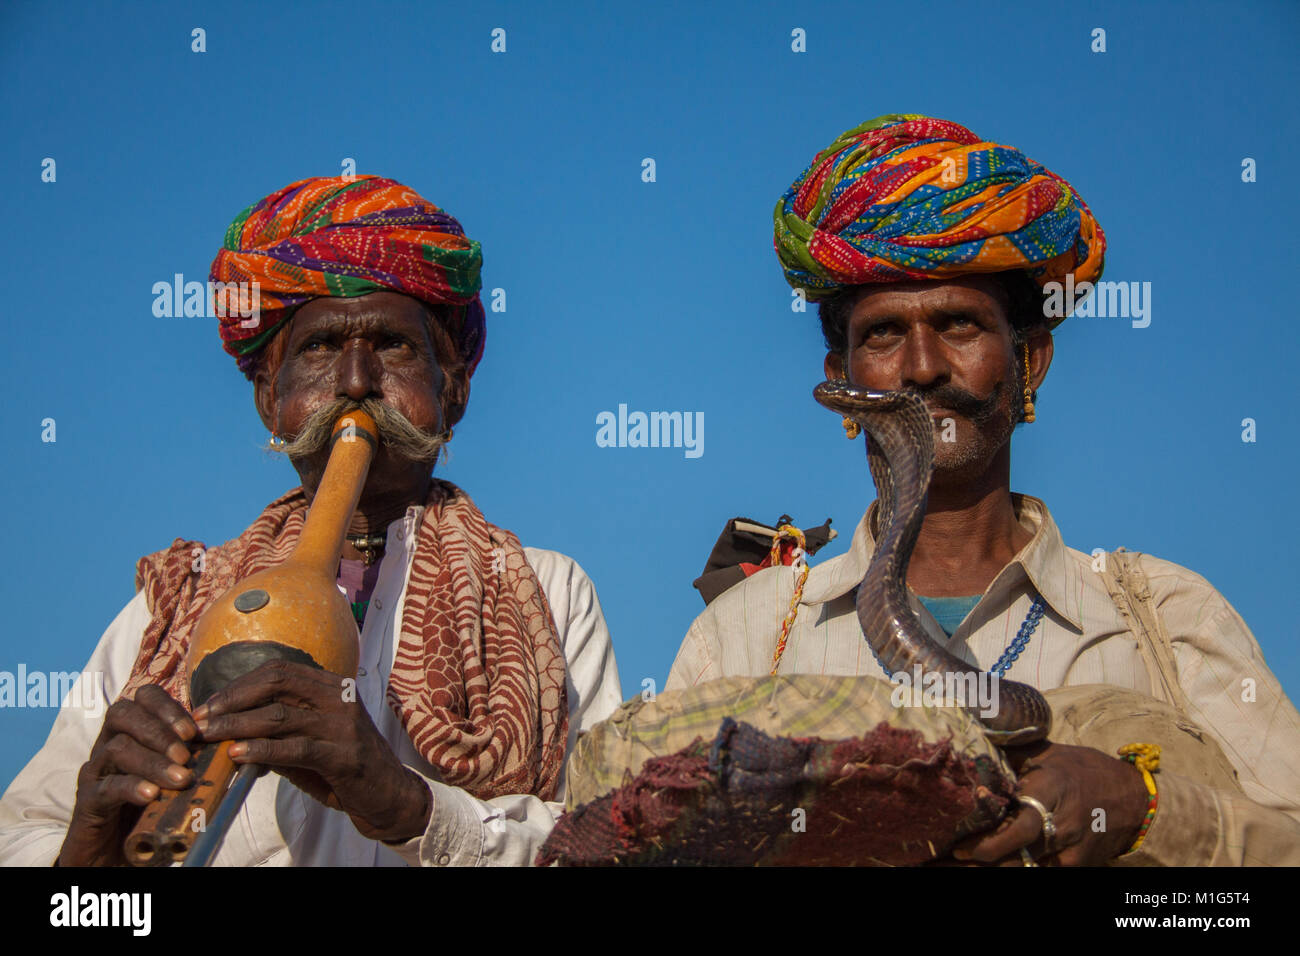 Snake charmers with a cobra to entertain tourists for money at the Pushkar Camel Fair, Rajasthan, India - Stock Image